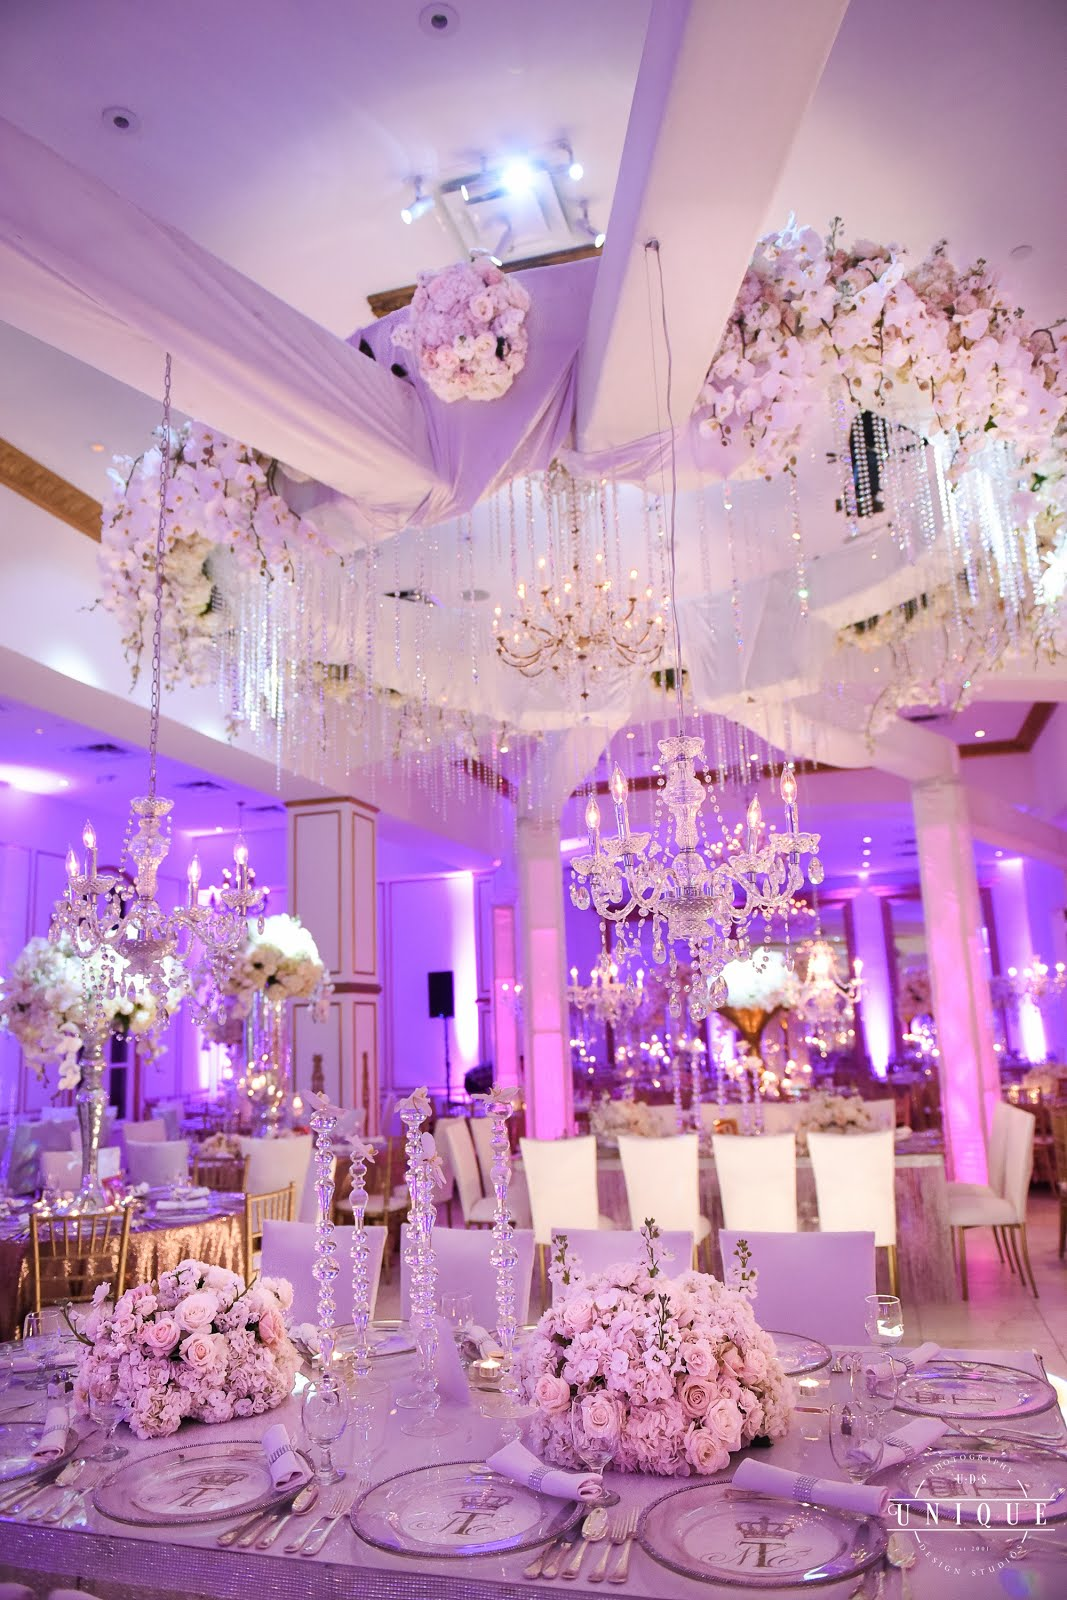 Tiffany Cook Events: Sneak peek at the magical Earl Thomas wedding ...